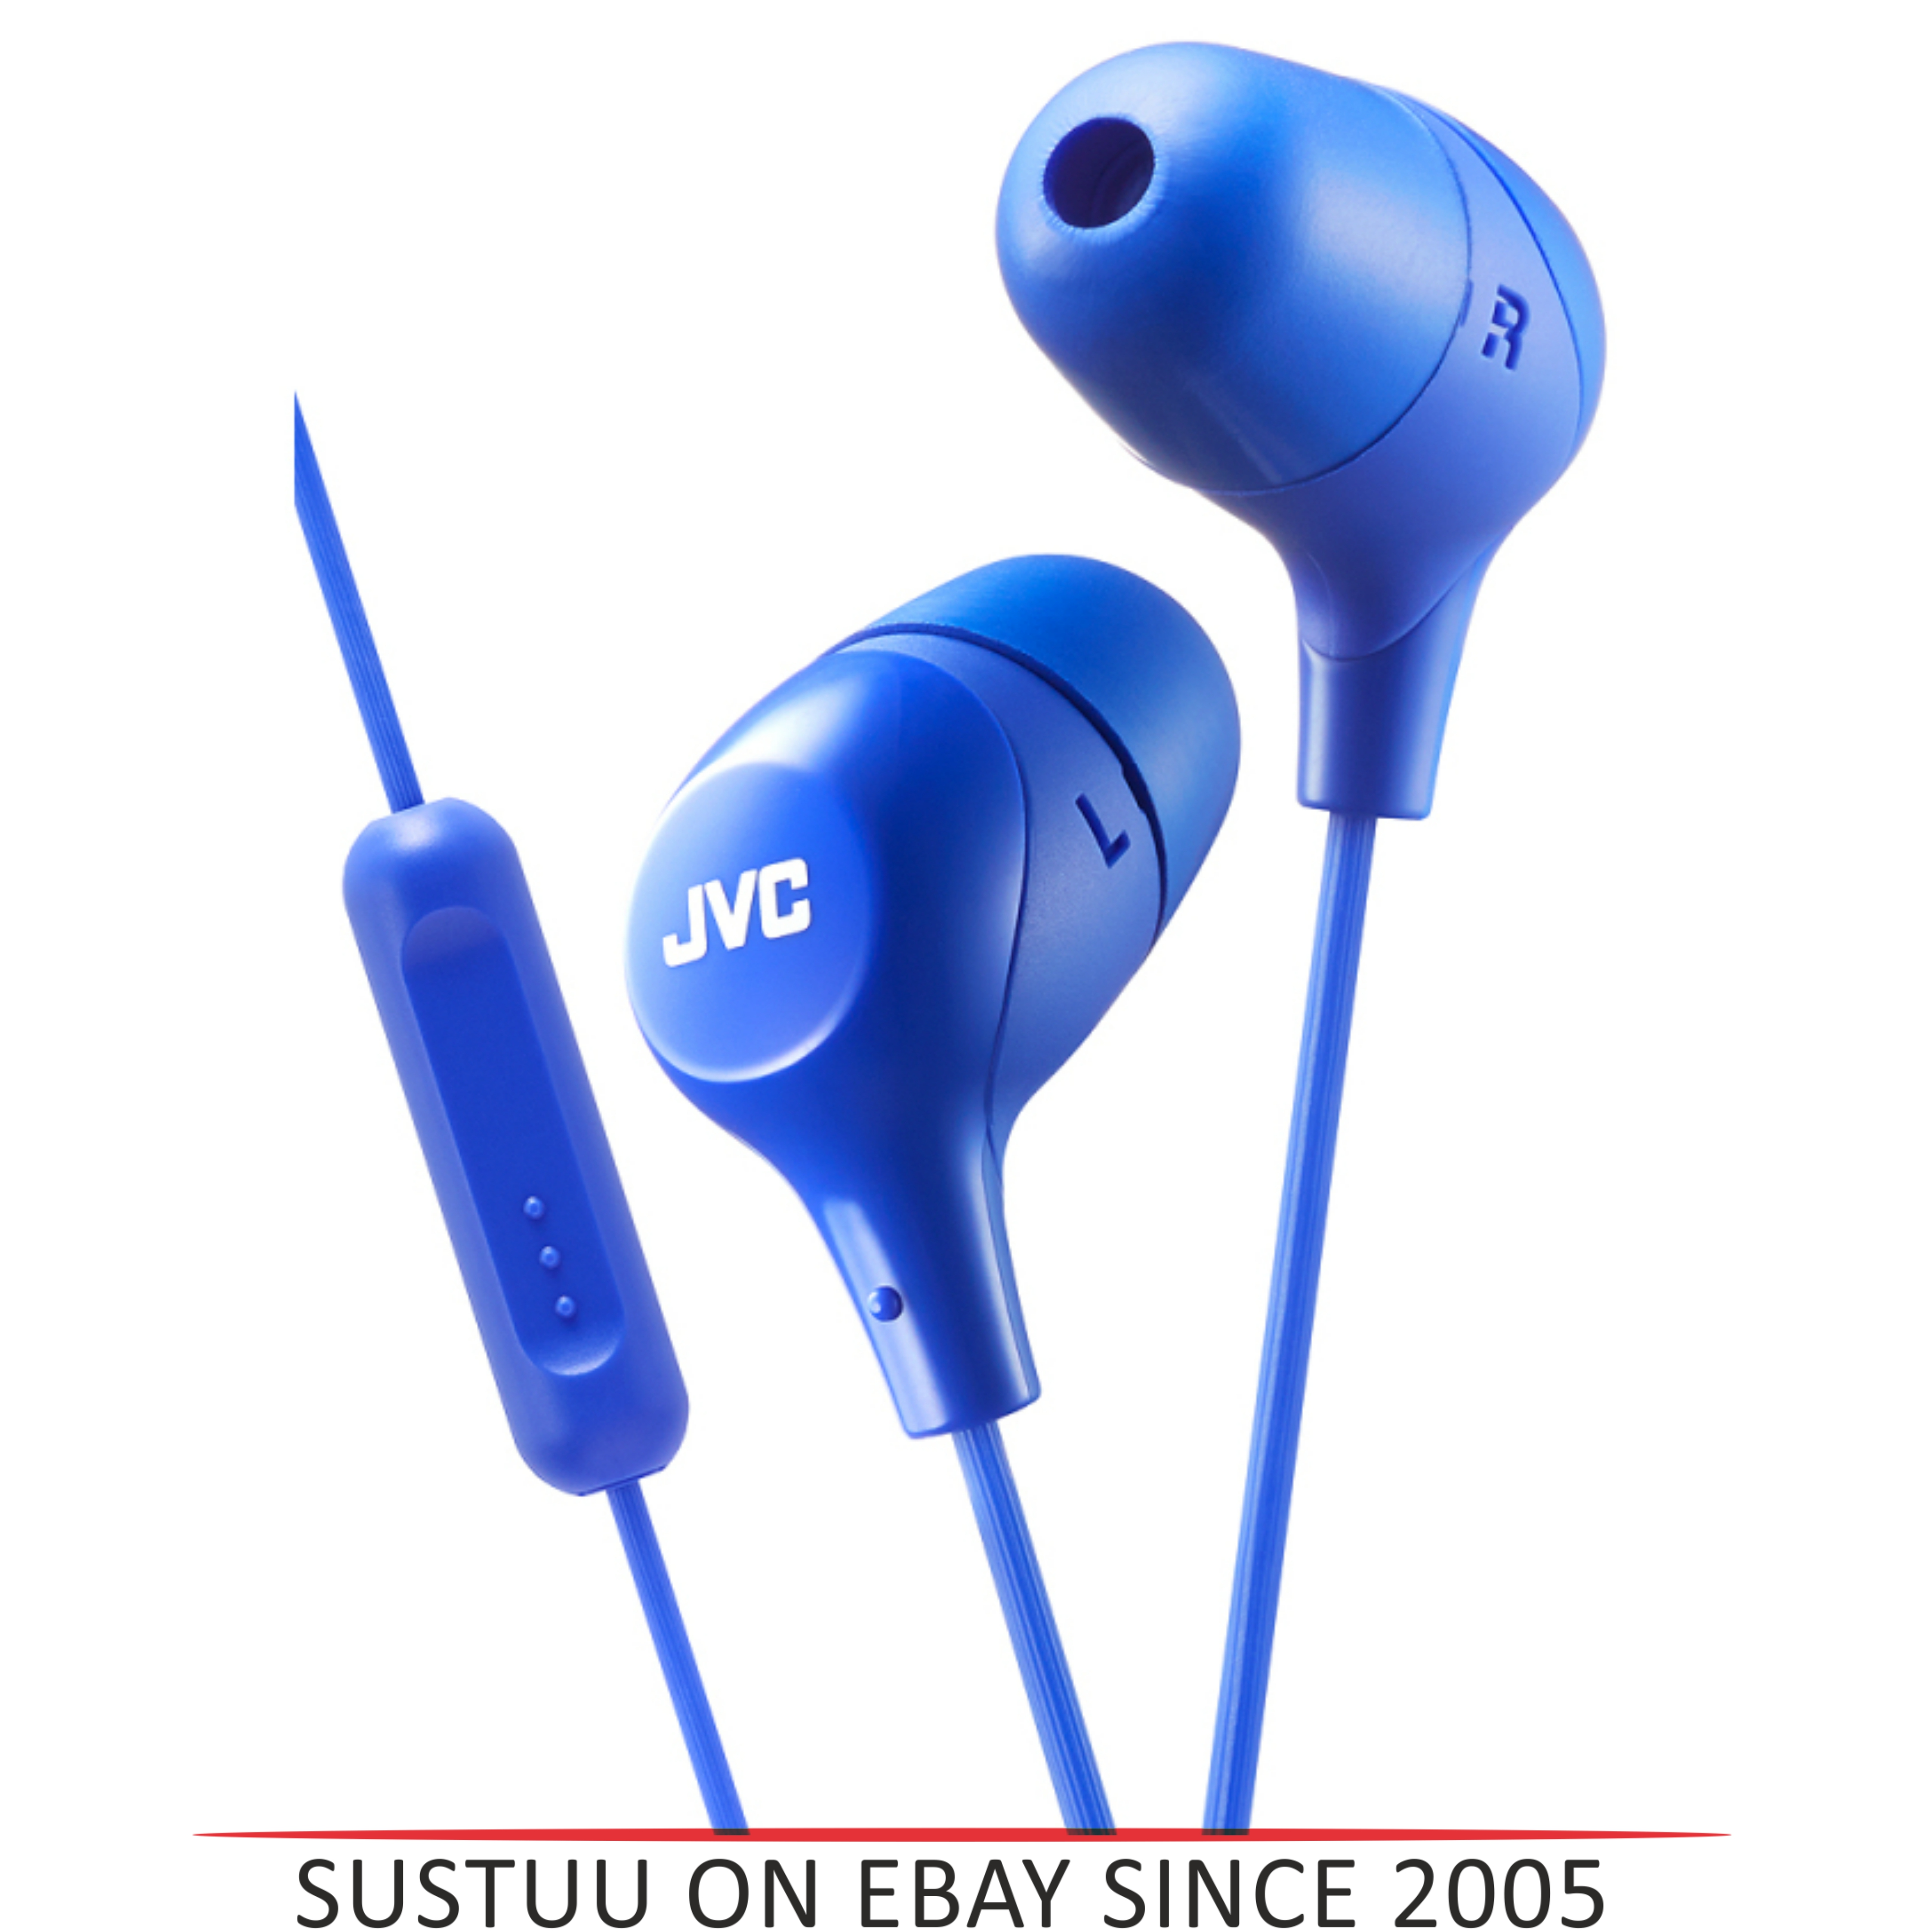 JVC Marshmallow Fit In-Ear Headphone With Remote & Mic for iPhone/Android - Blue